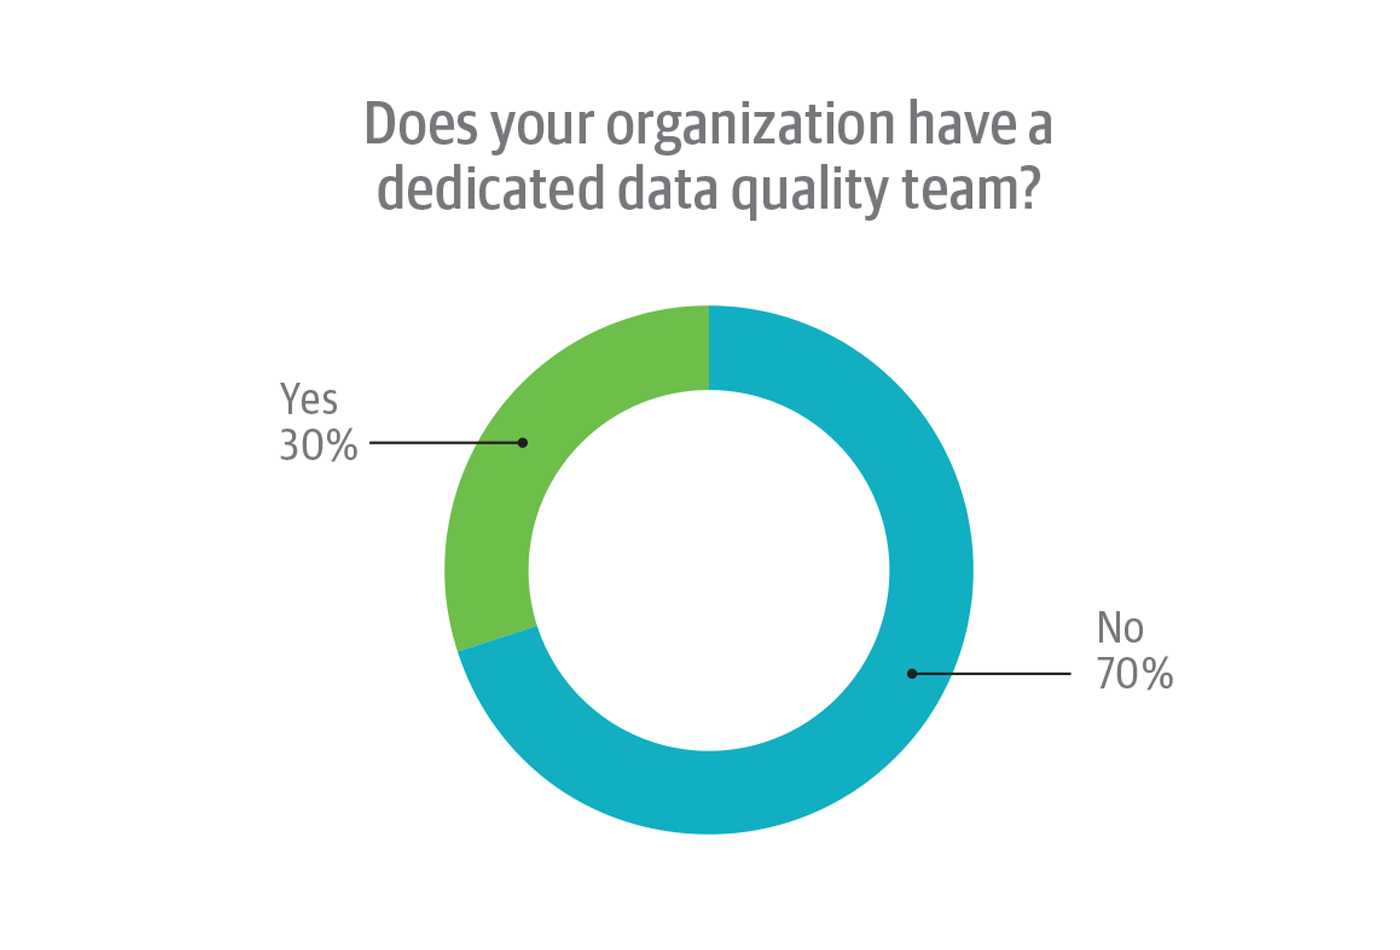 Presence of dedicated data quality teams in organizations